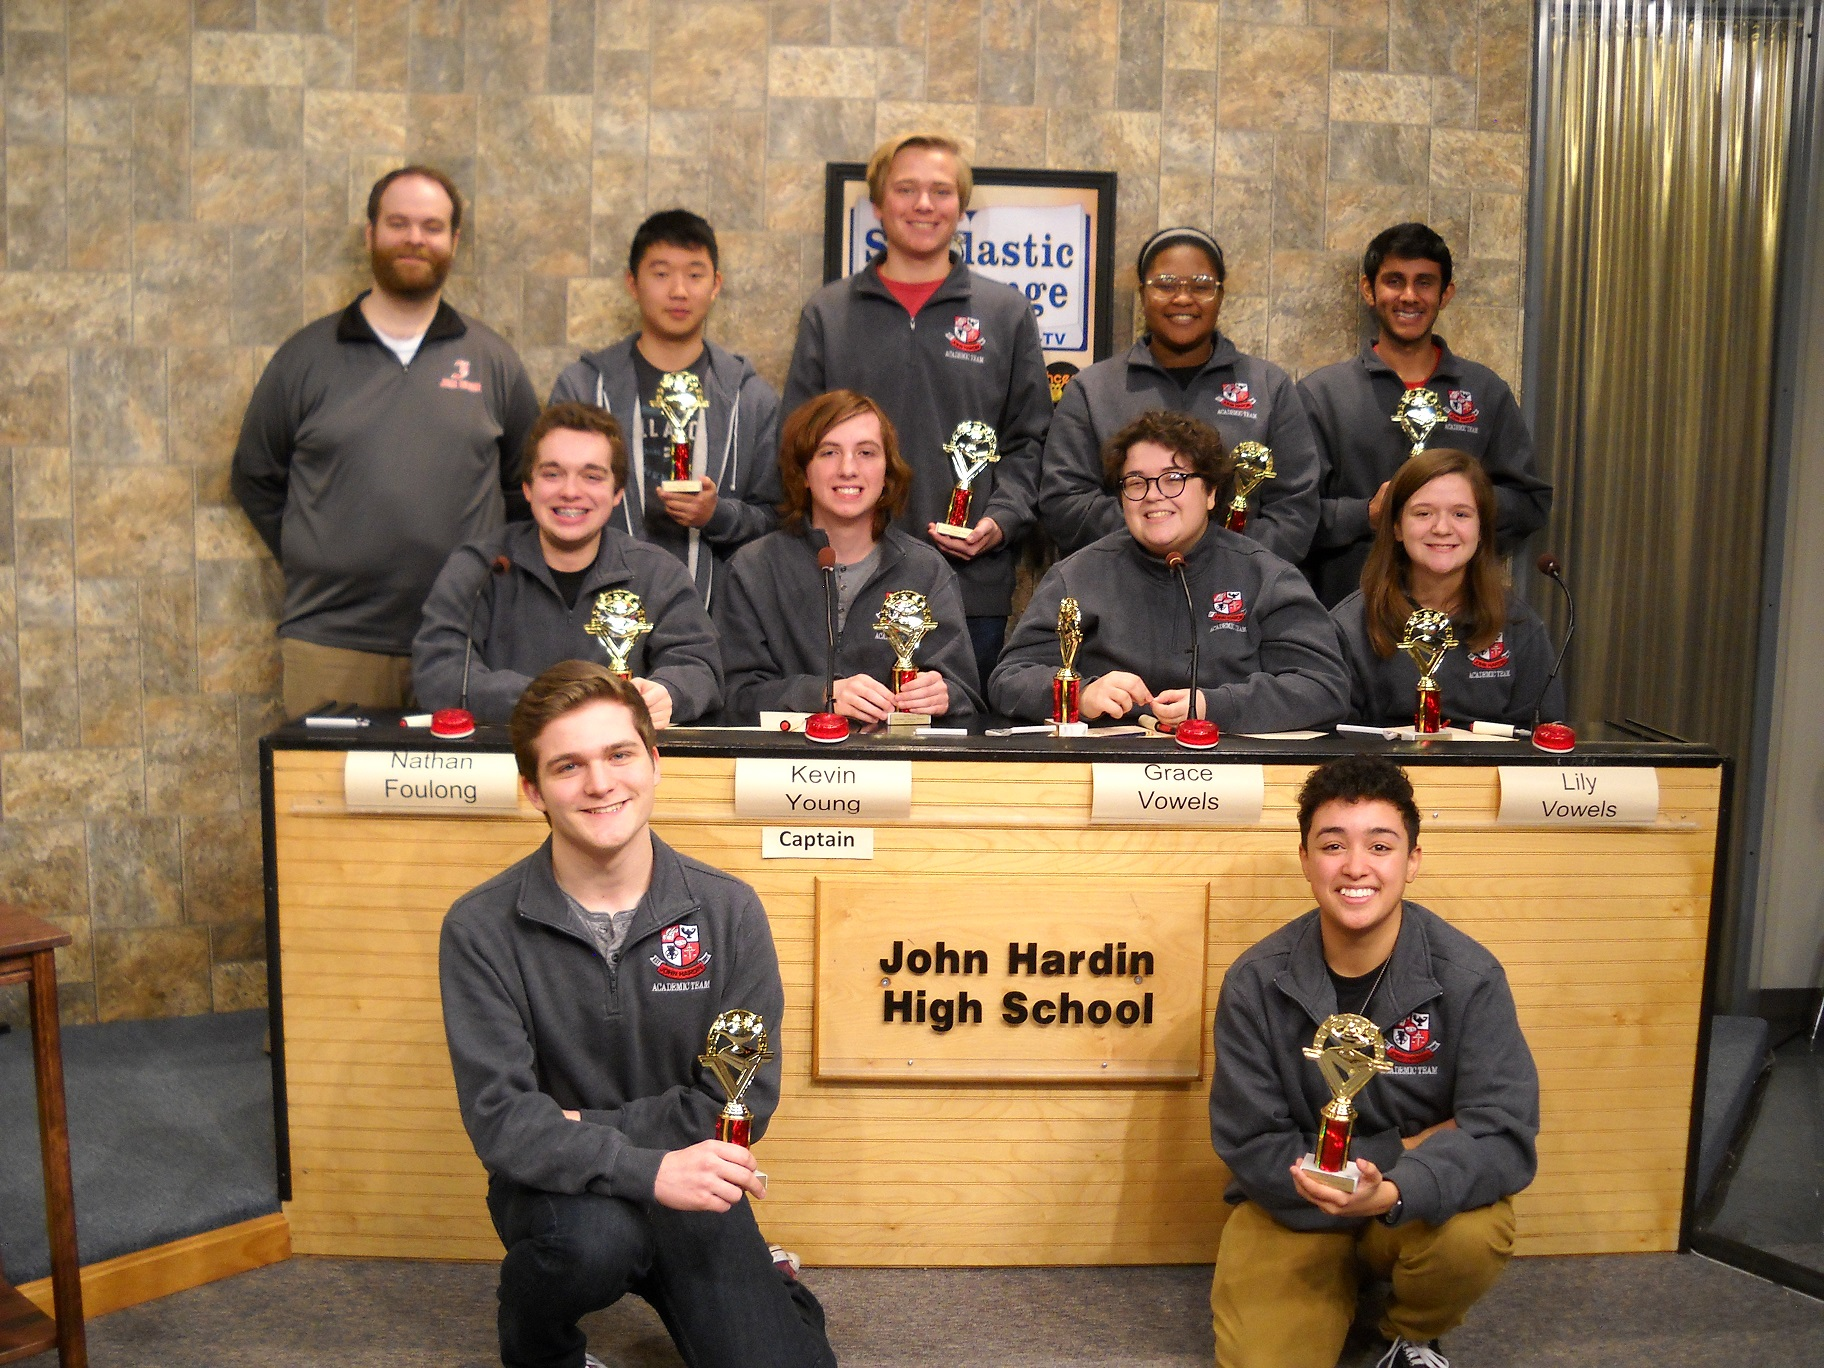 John Hardin High School -- Scholastic Challenge winner 2016-17